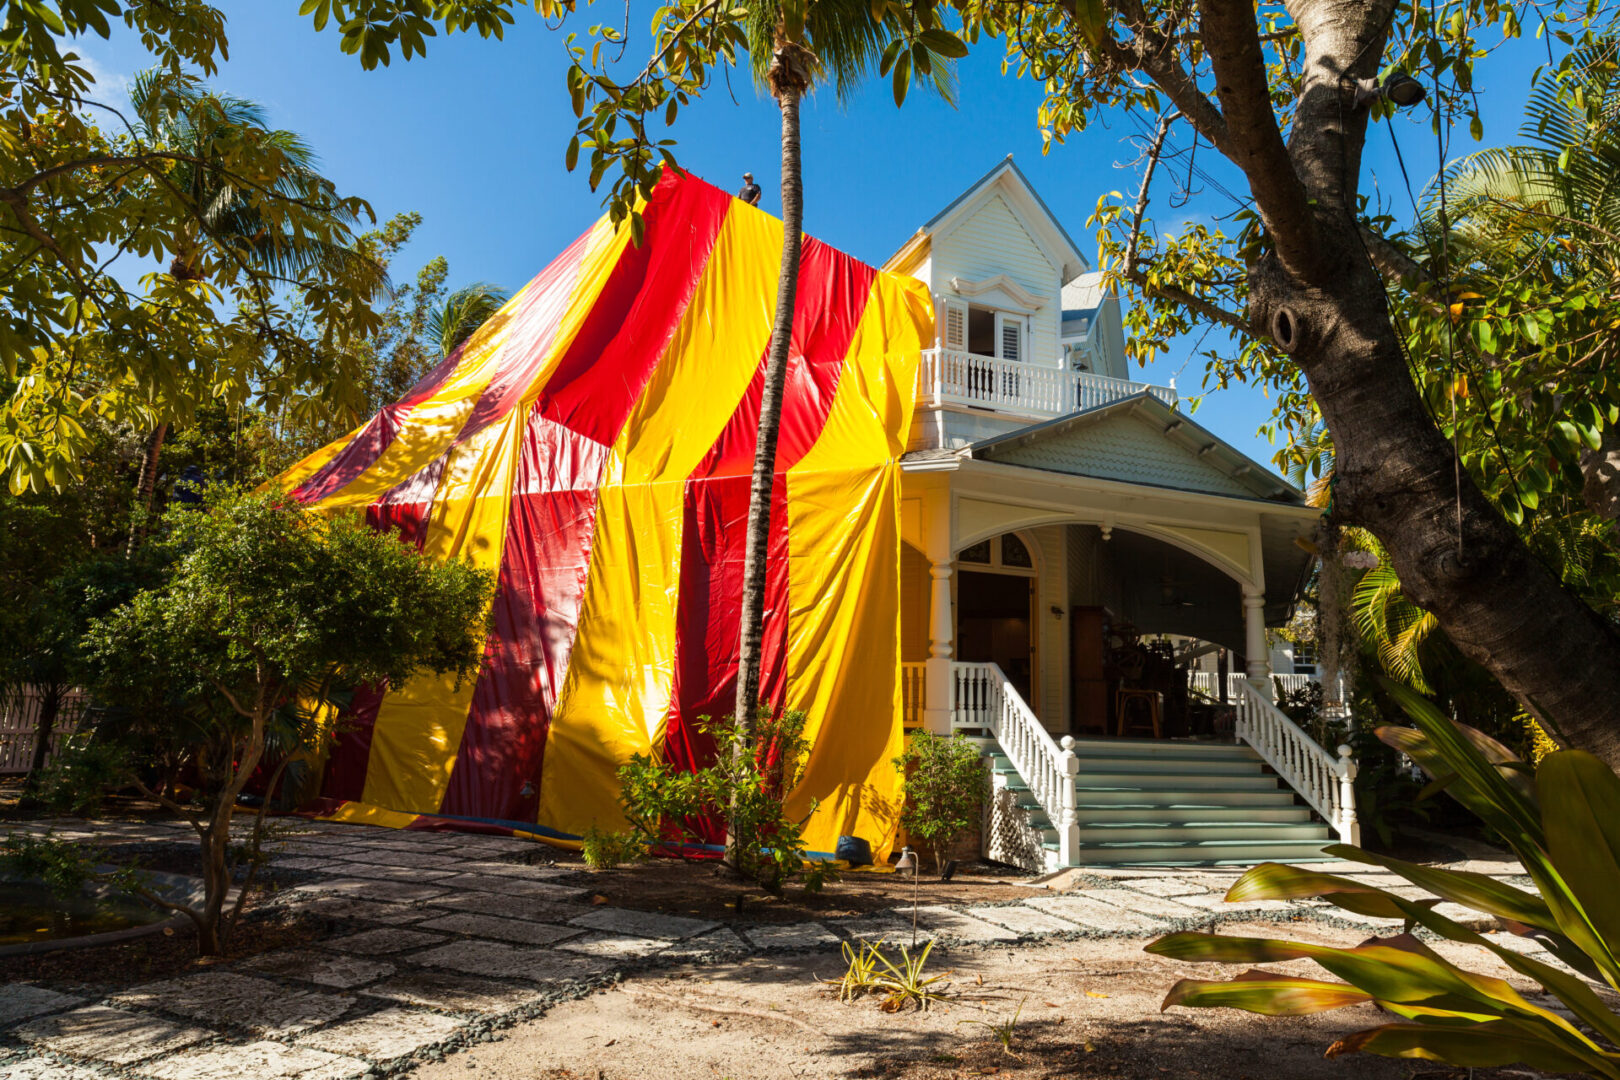 Vintage Home Tented for Termite Treatment